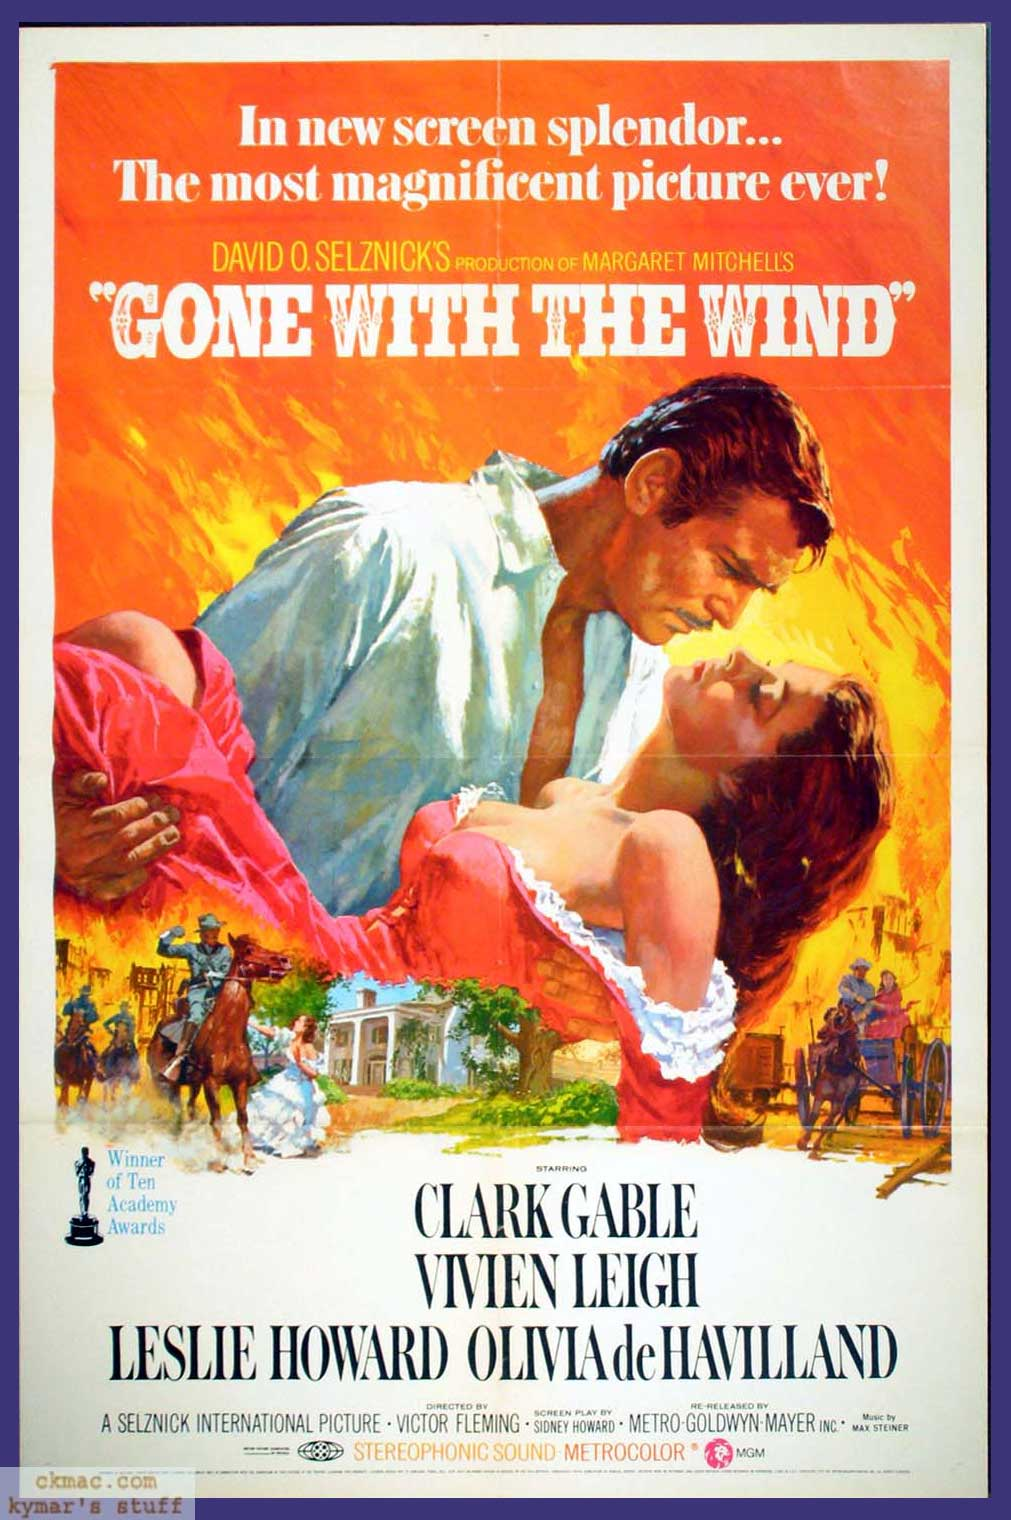 favorite things: classic movie posters